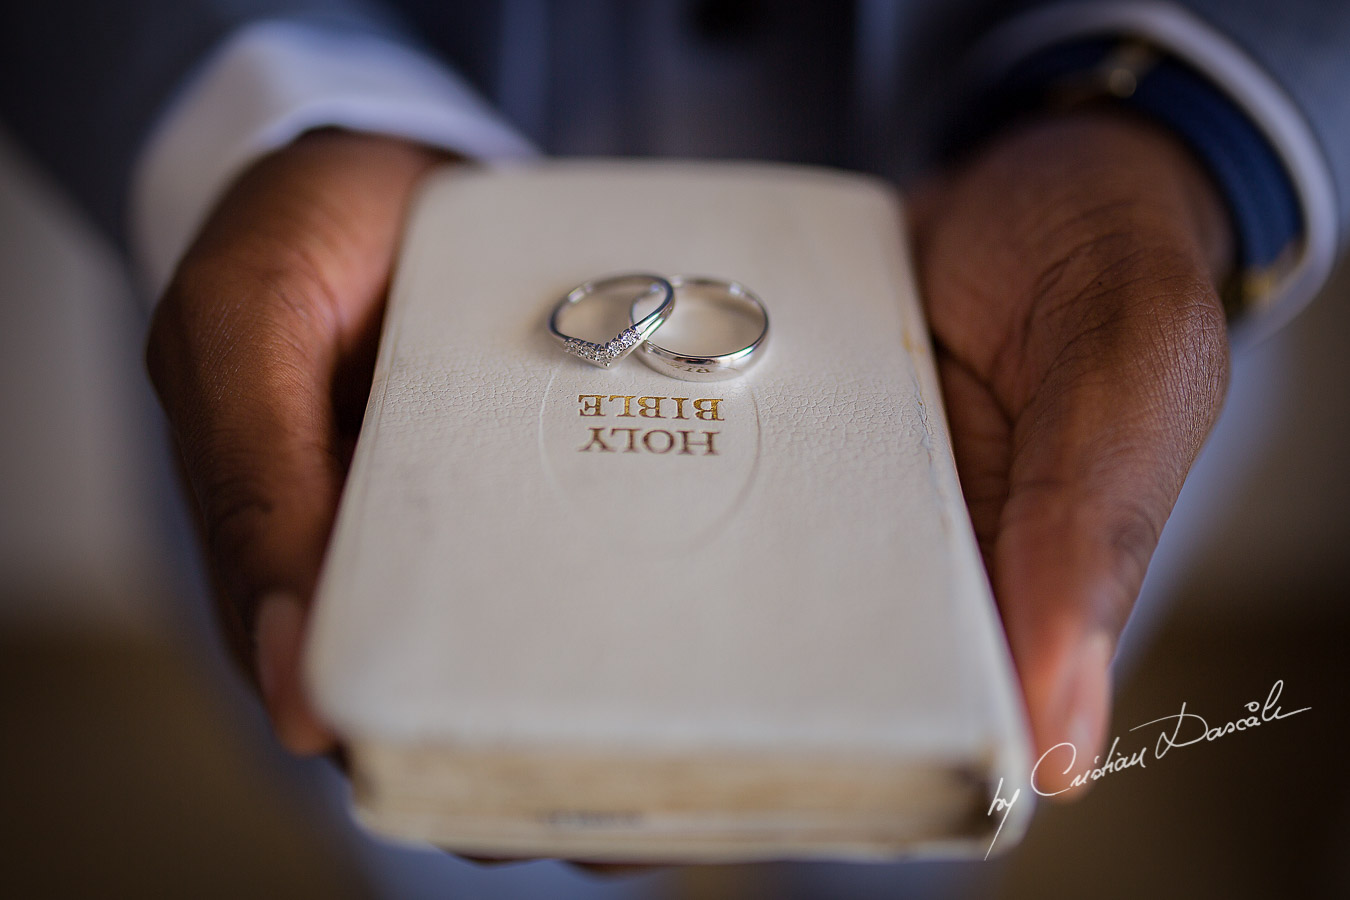 The wedding rings captured on the Holy Bible at a wedding at Minthis Hills in Cyprus, by Cristian Dascalu.